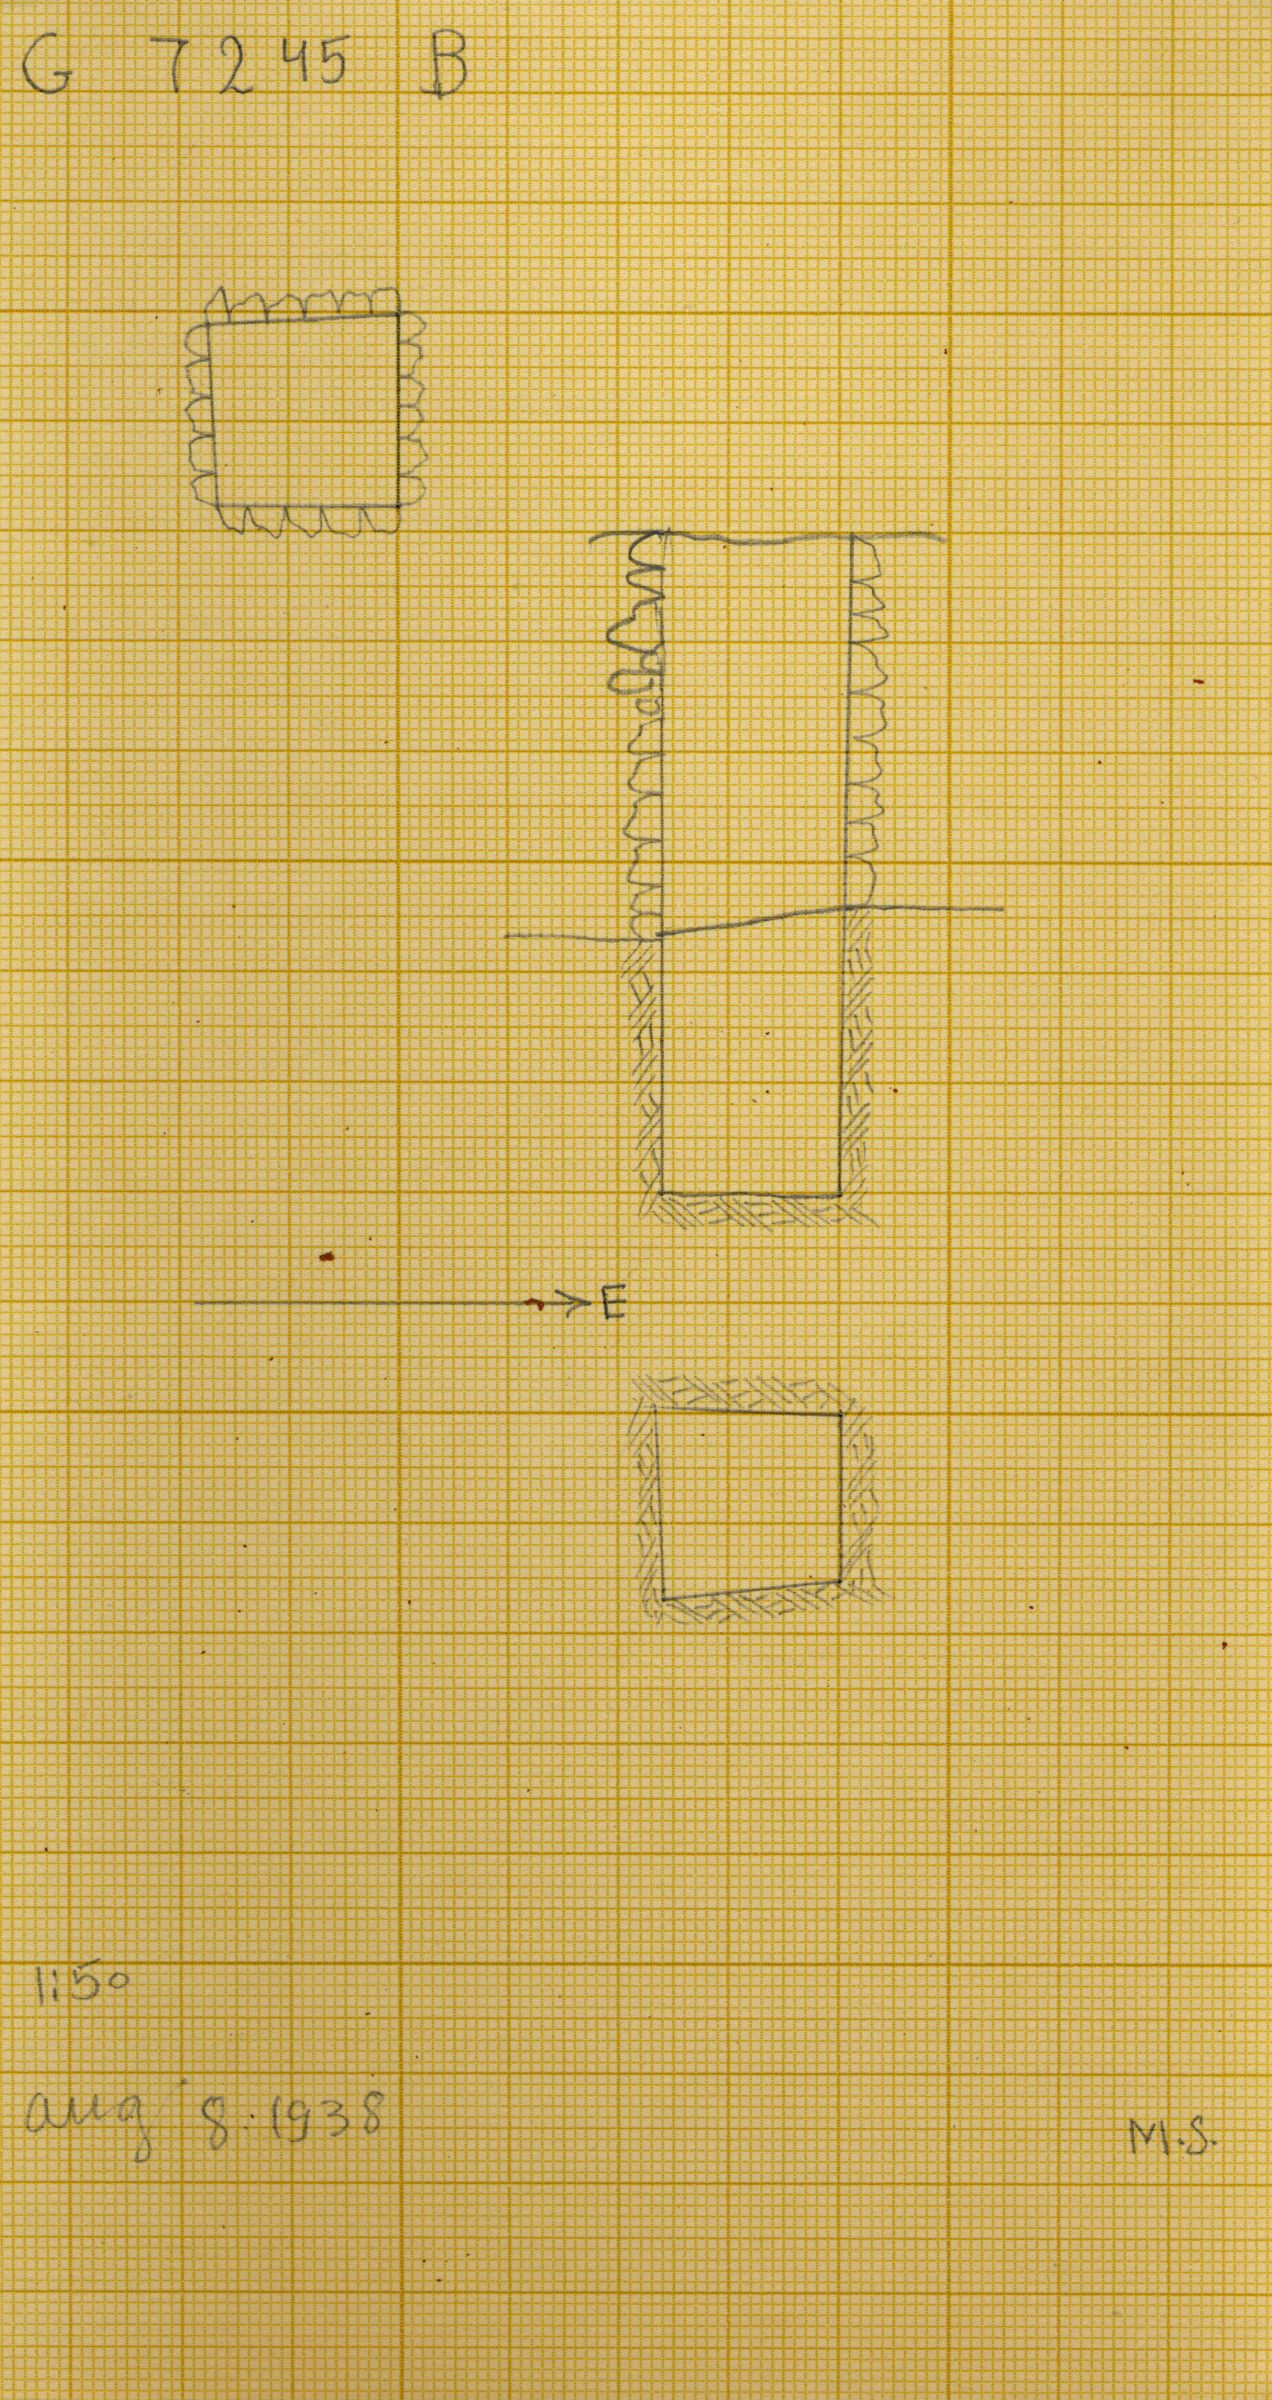 Maps and plans: G 7245, Shaft B